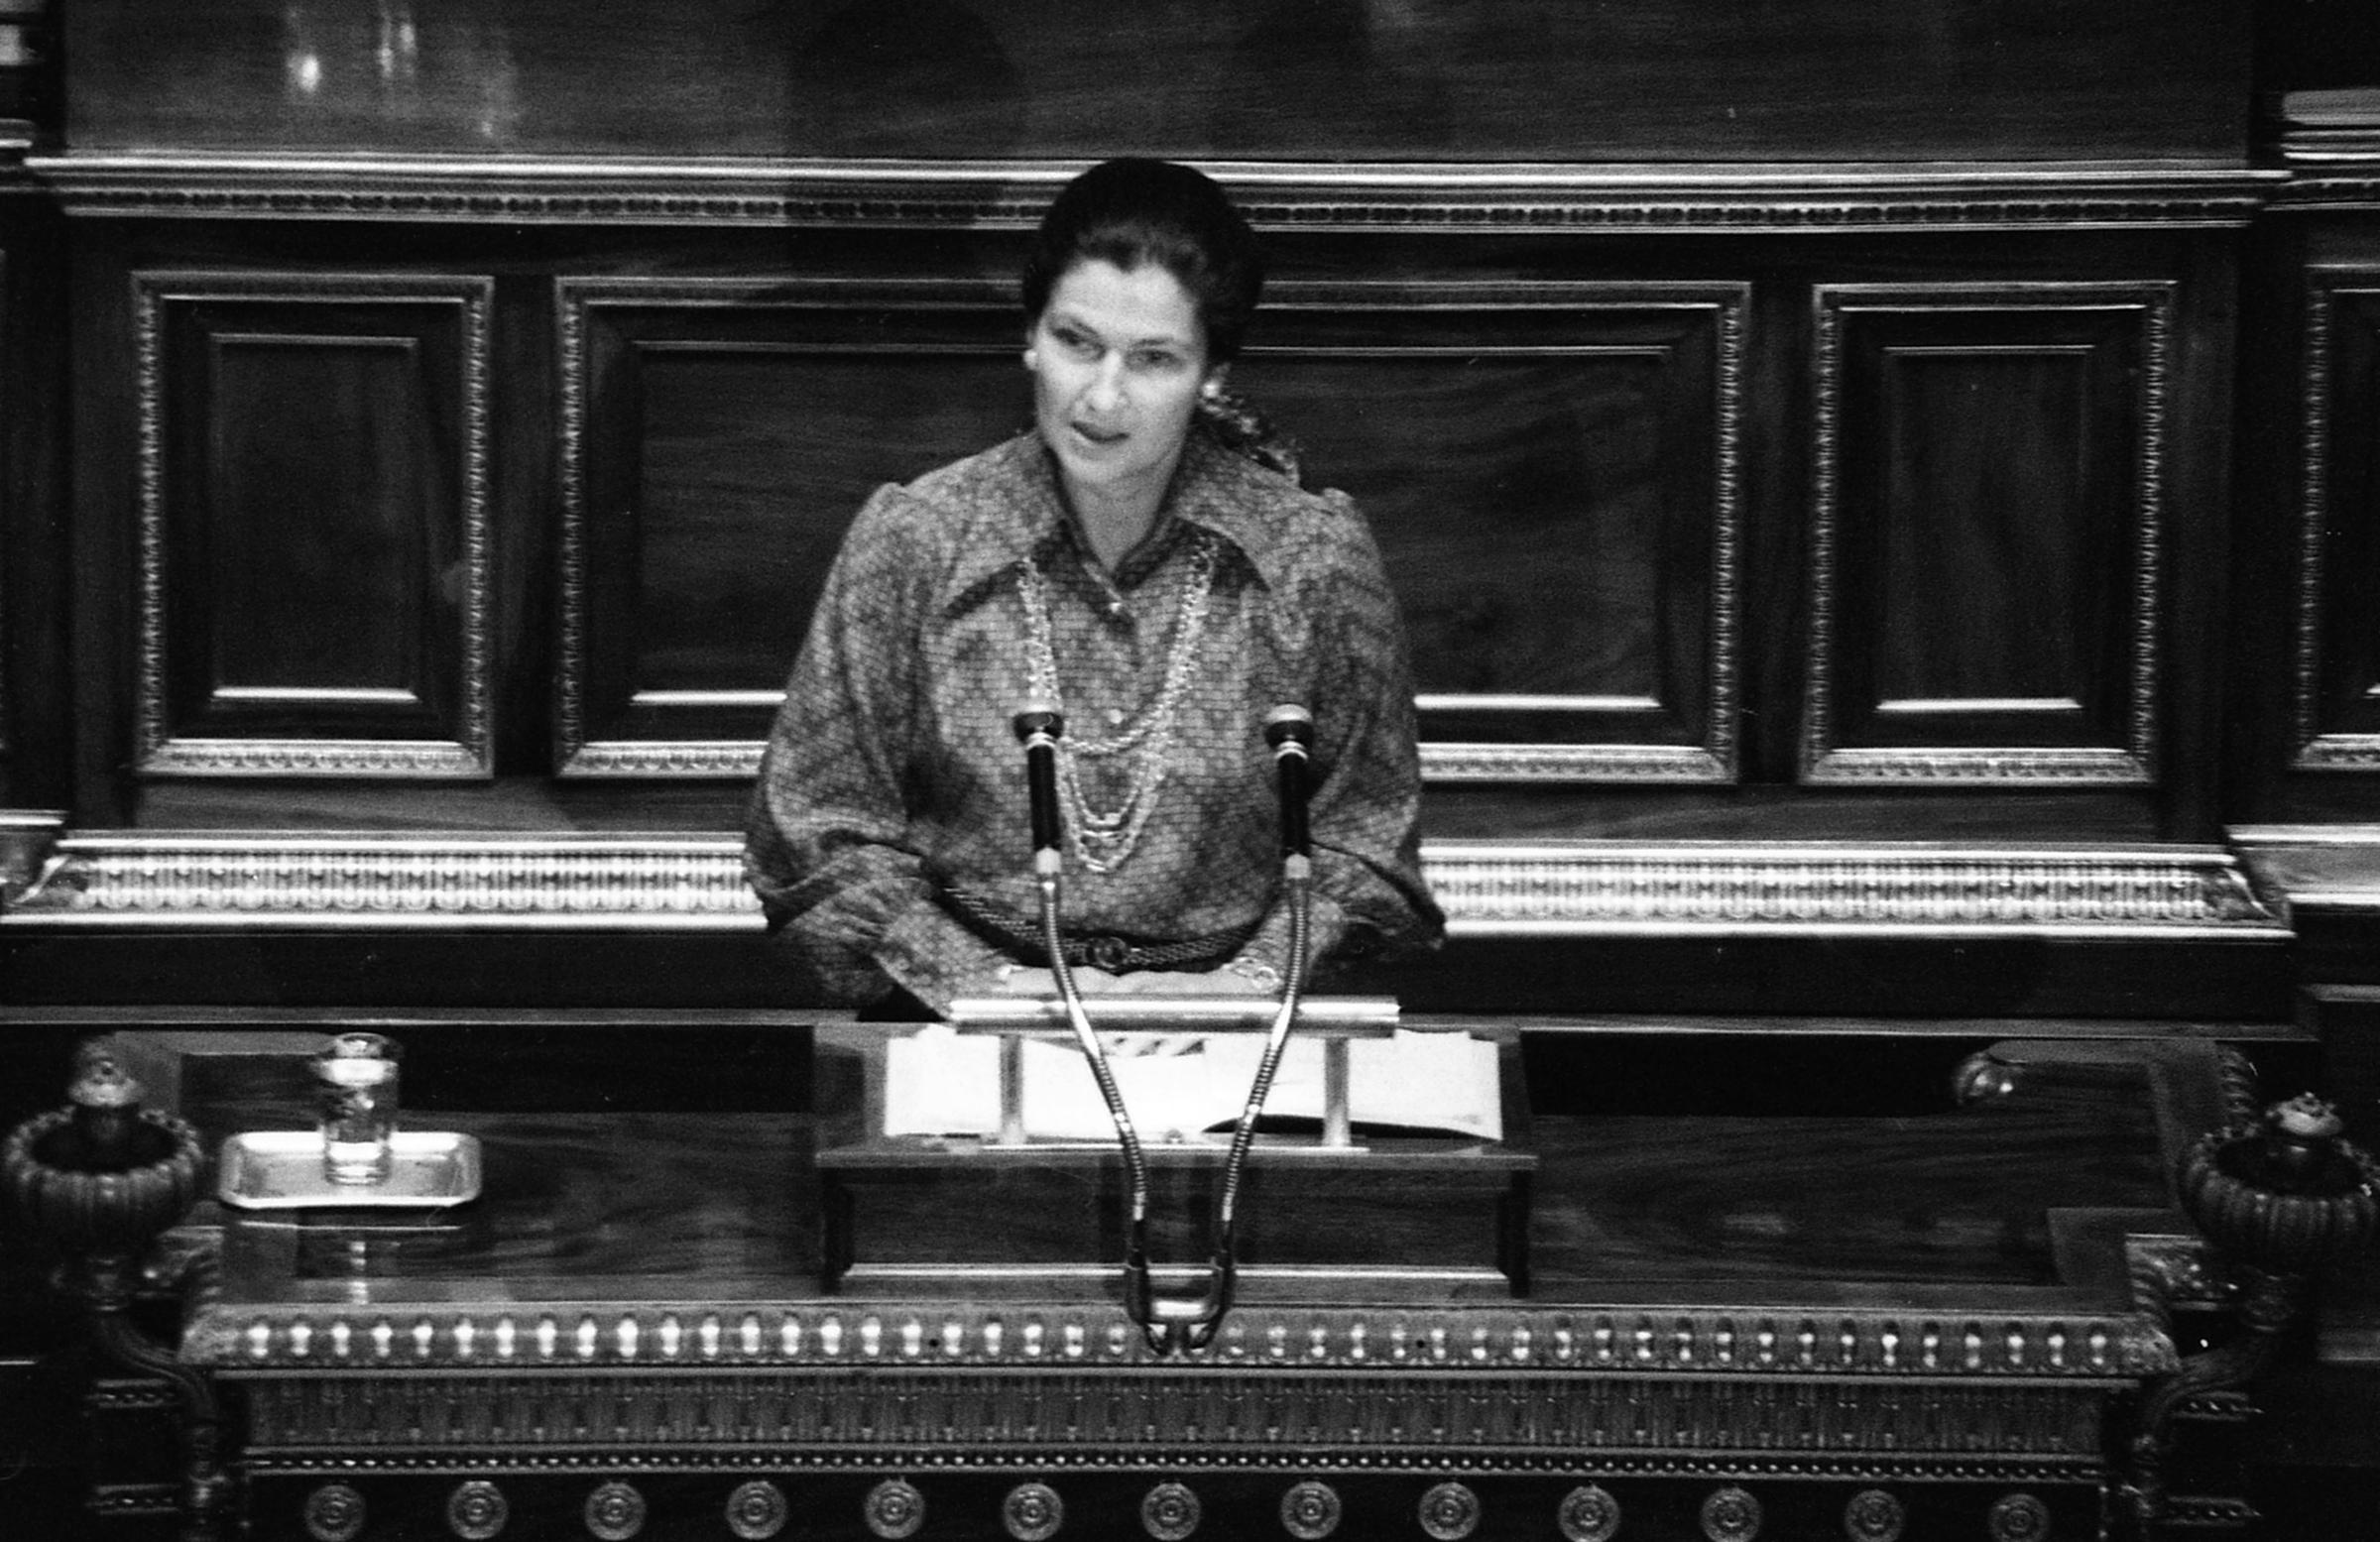 French Holocaust survivor and pro-abortion campaigner Simone Veil dies at 89